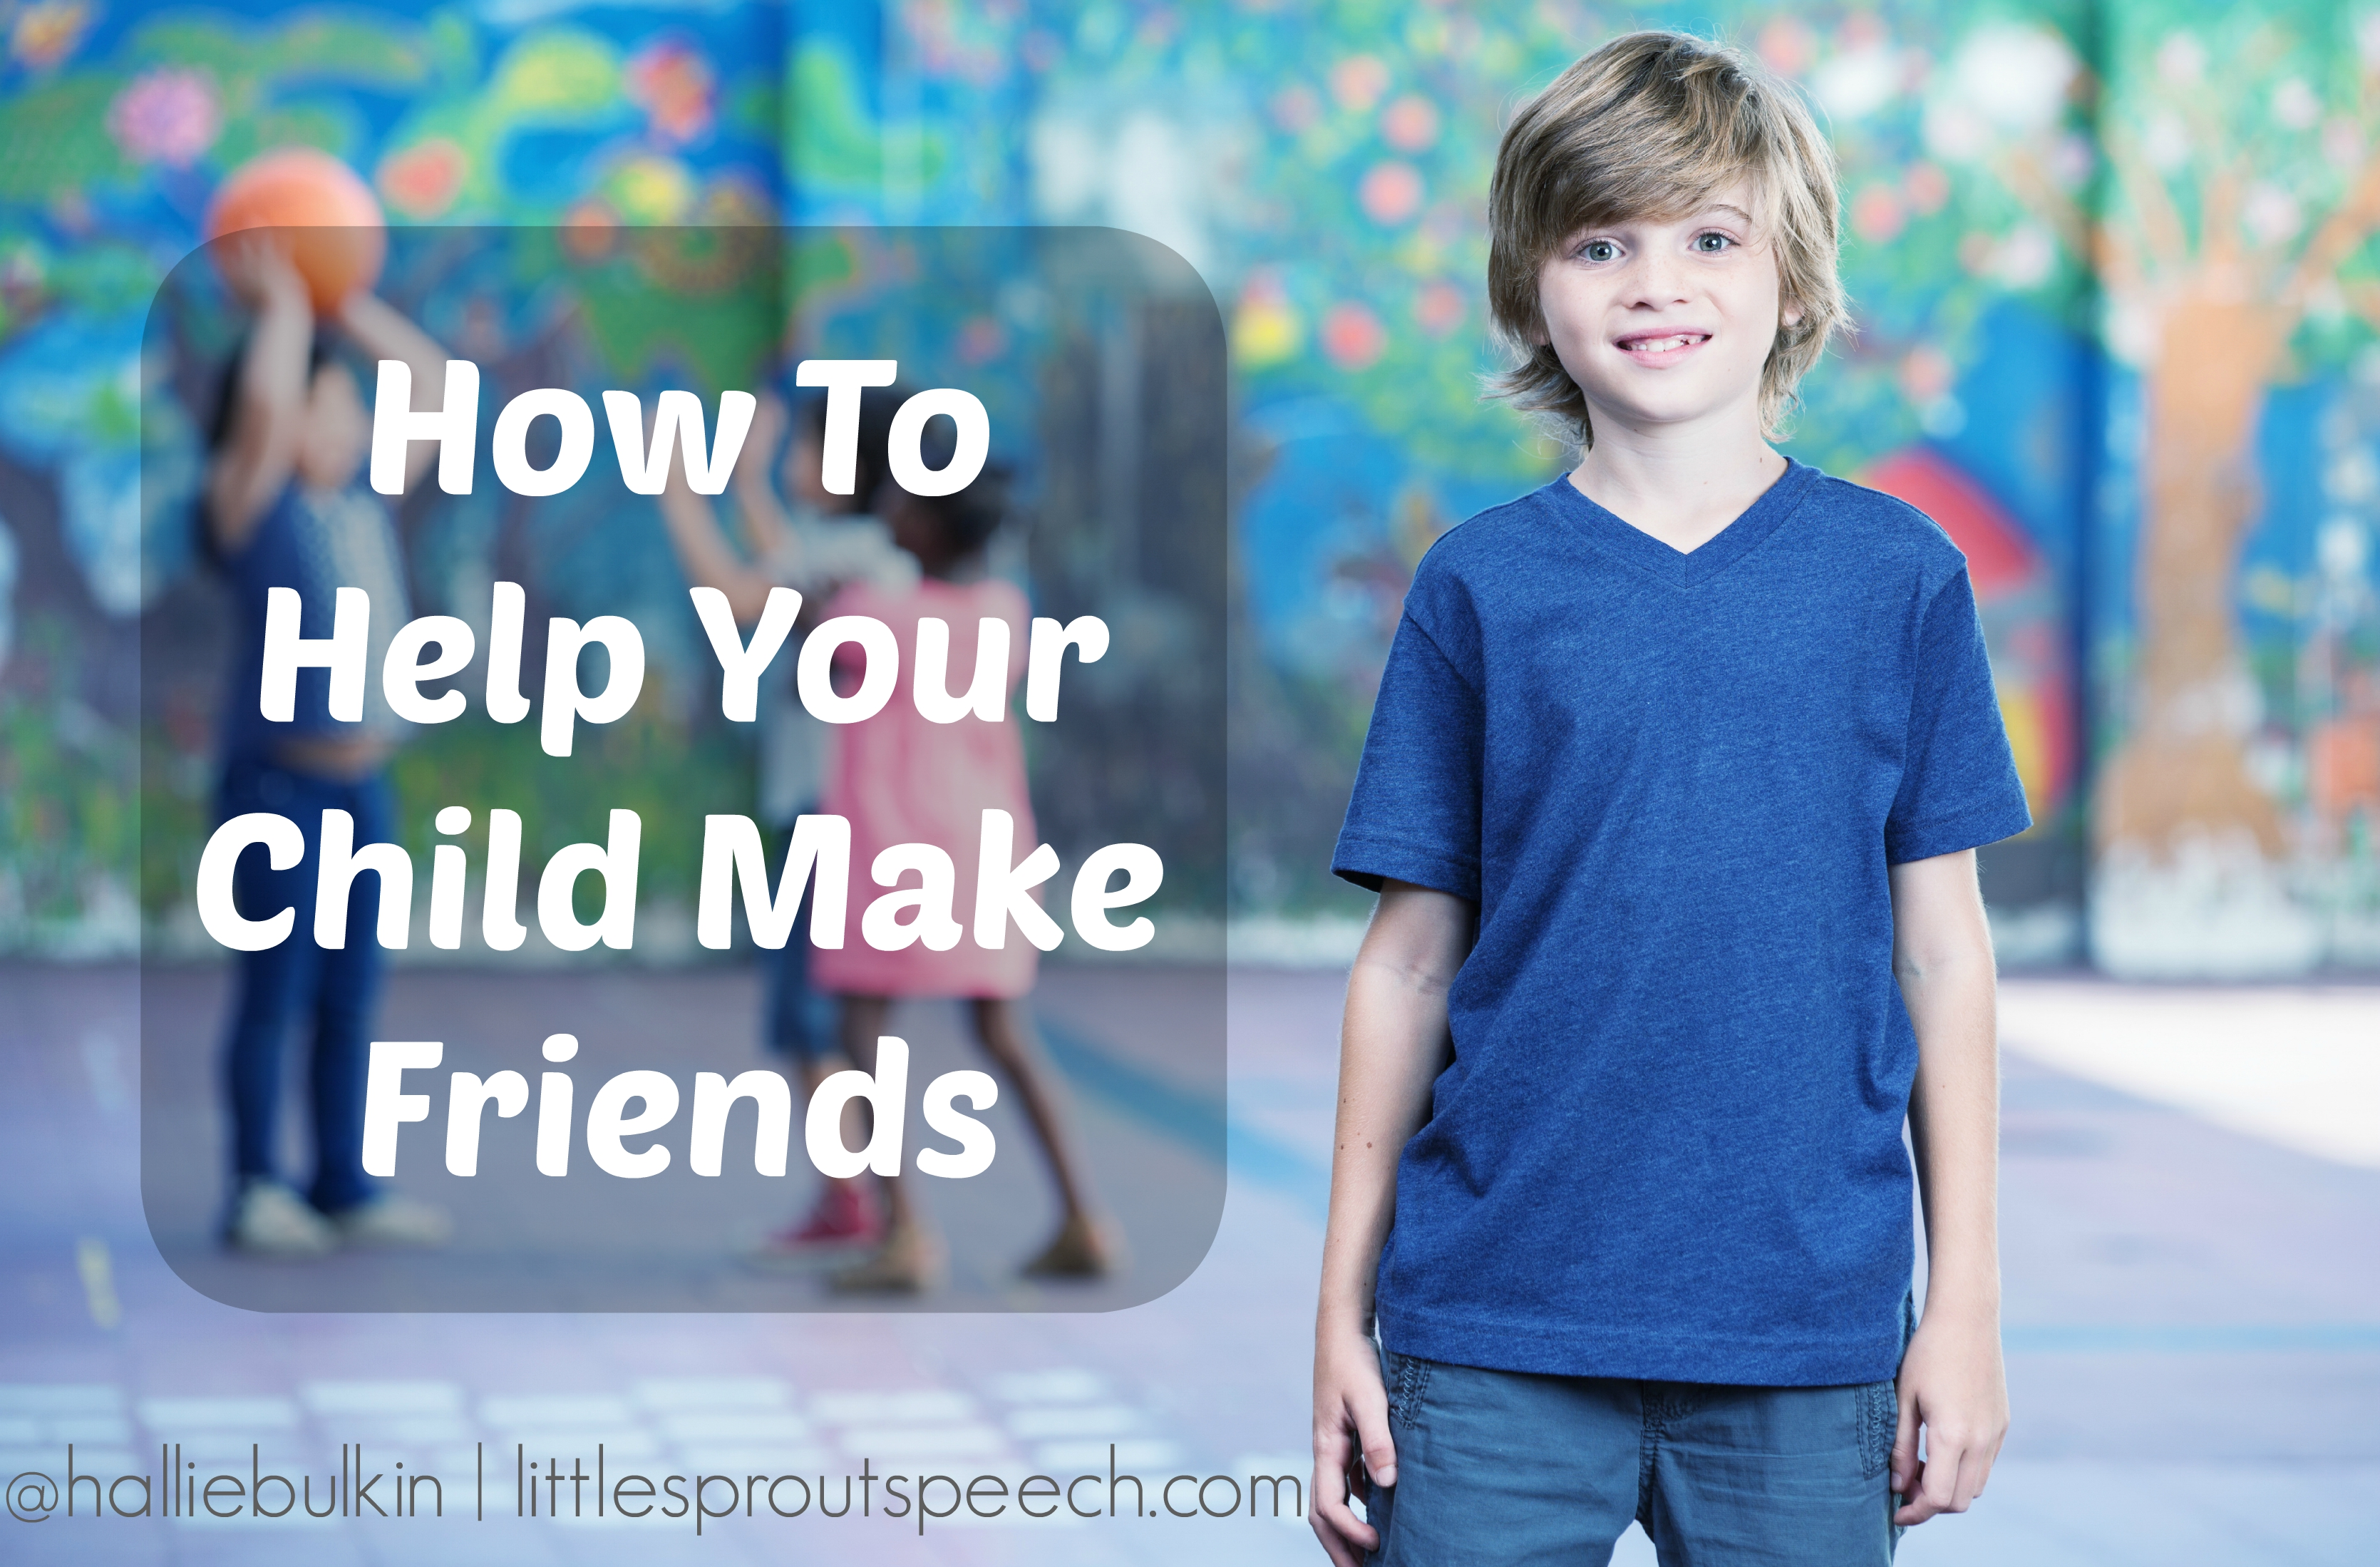 How to help your child ask a friend to play ccuart Image collections